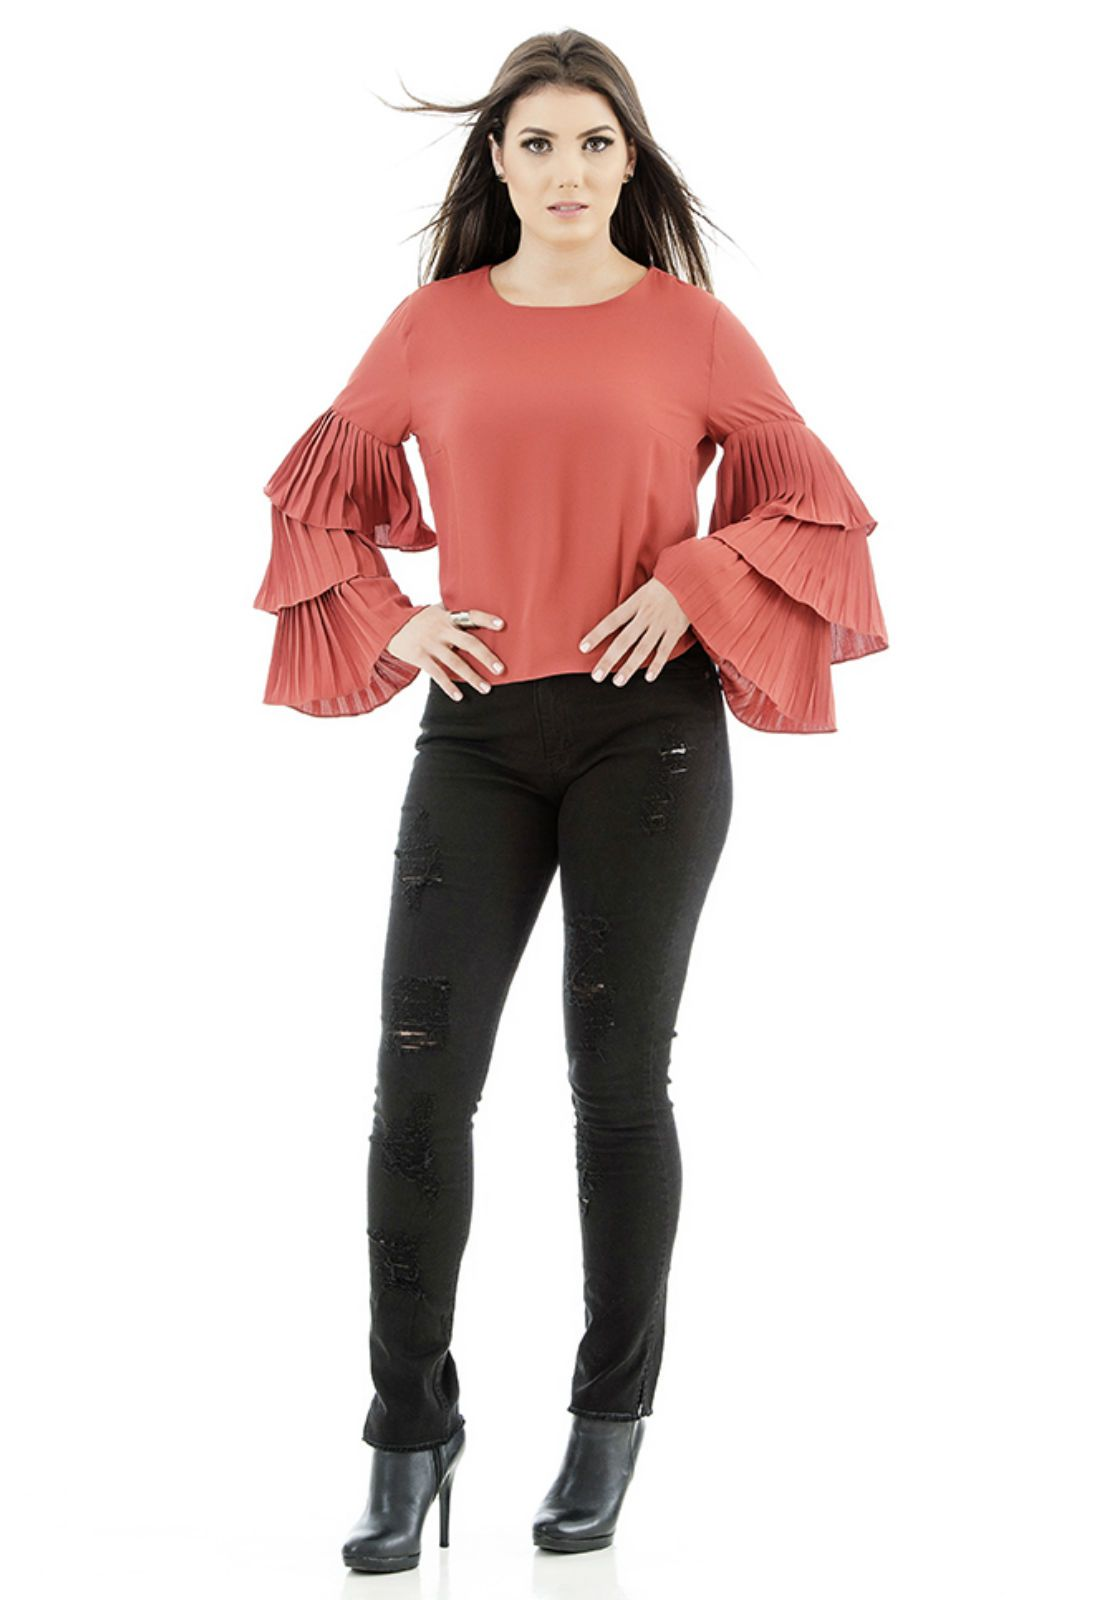 Blusa com babados unique chic